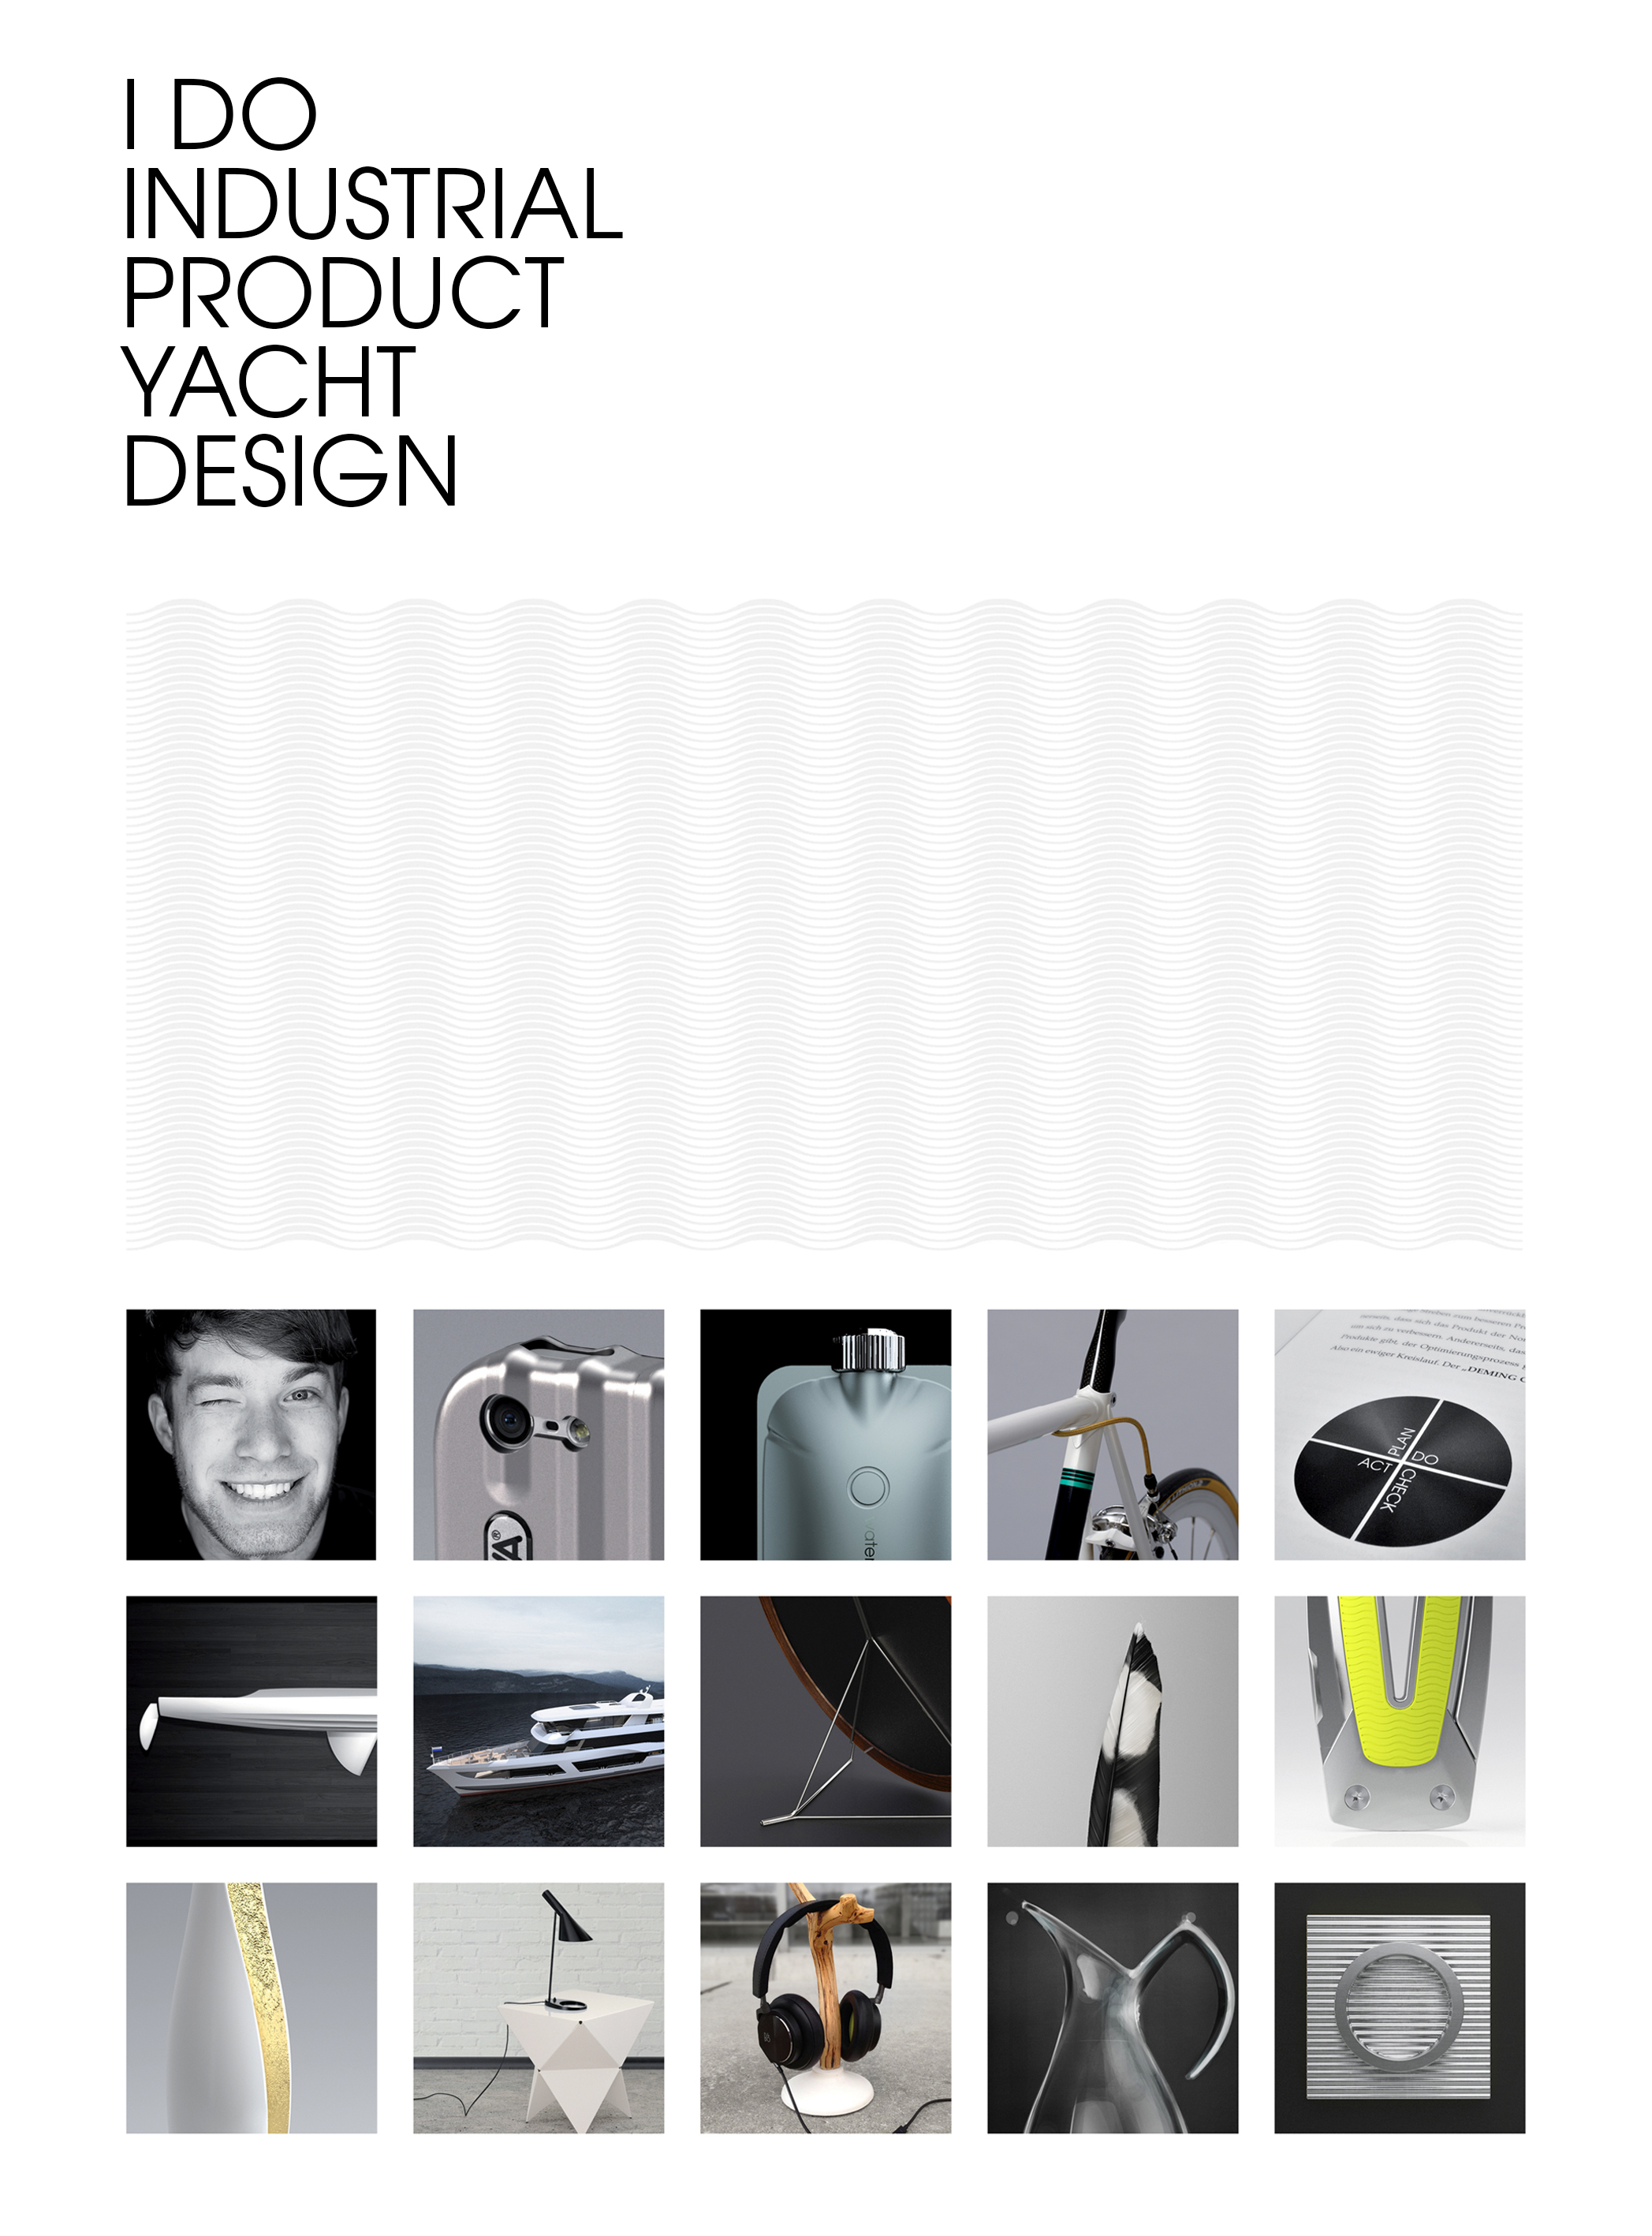 I DO HARD CORE  INDUSTRIAL  PRODUCT  YACHT DESIGN